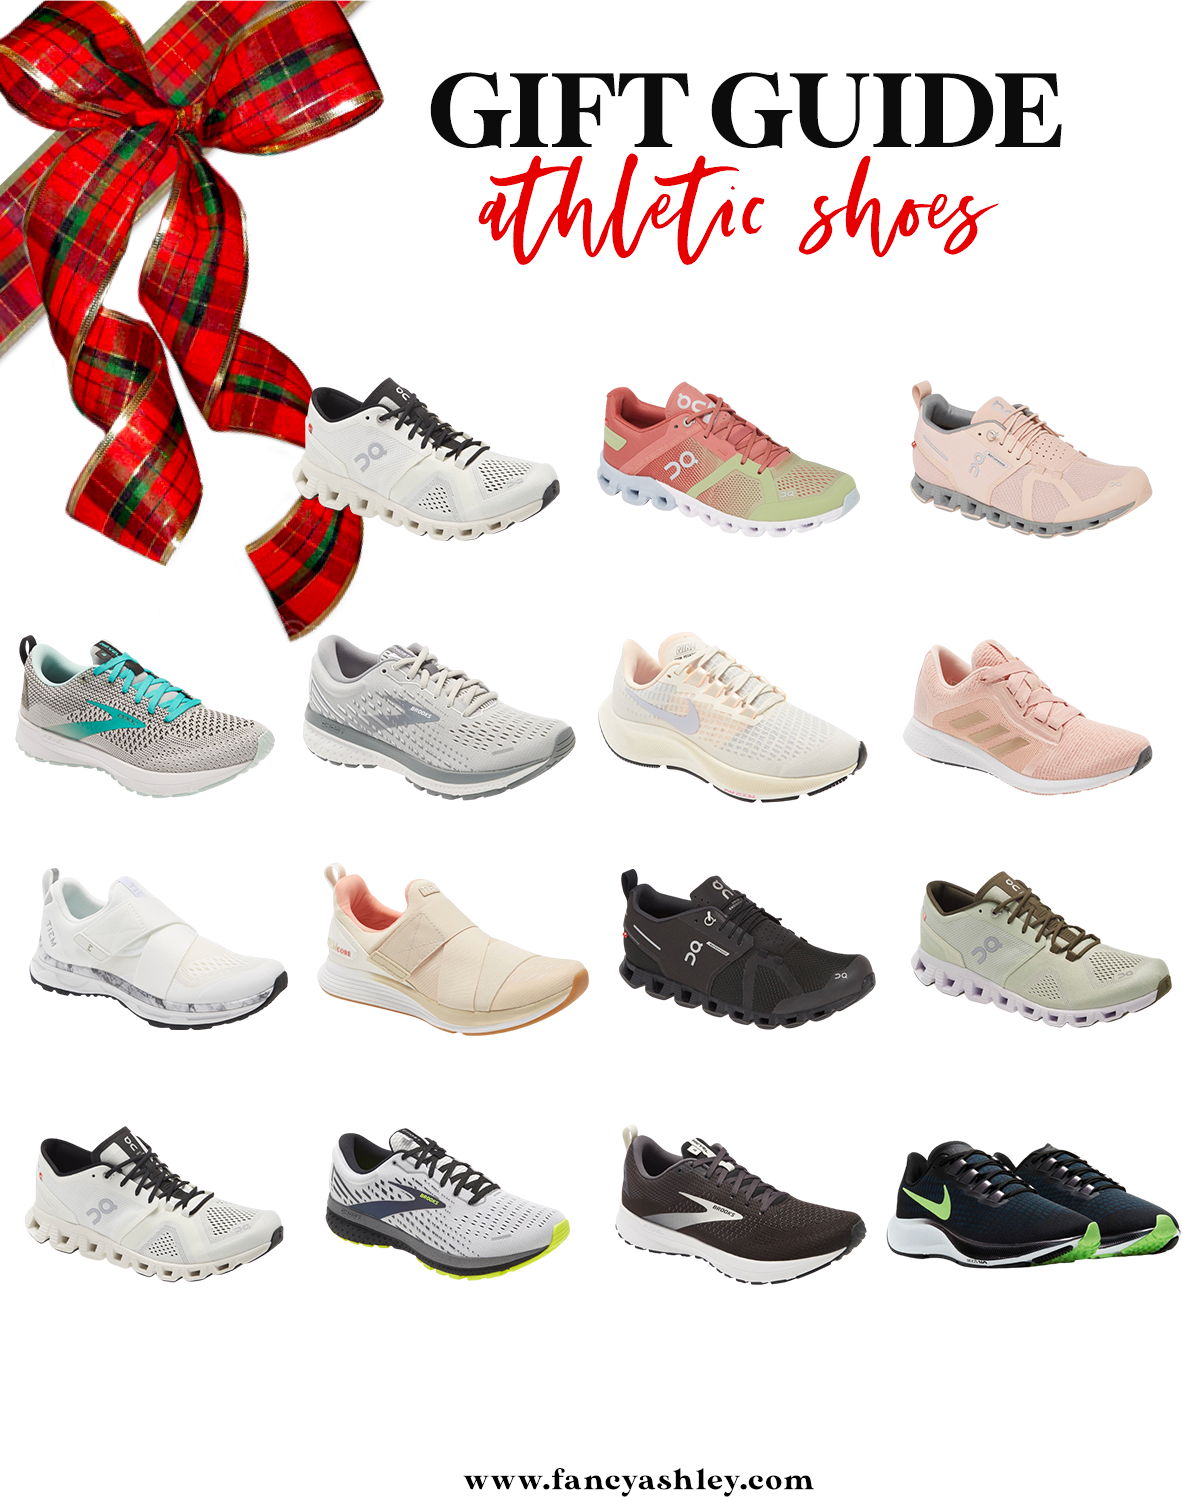 On Cloud Running Shoes by popular Houston fashion blog, Fancy Ashley: collage image of athletic shoes.